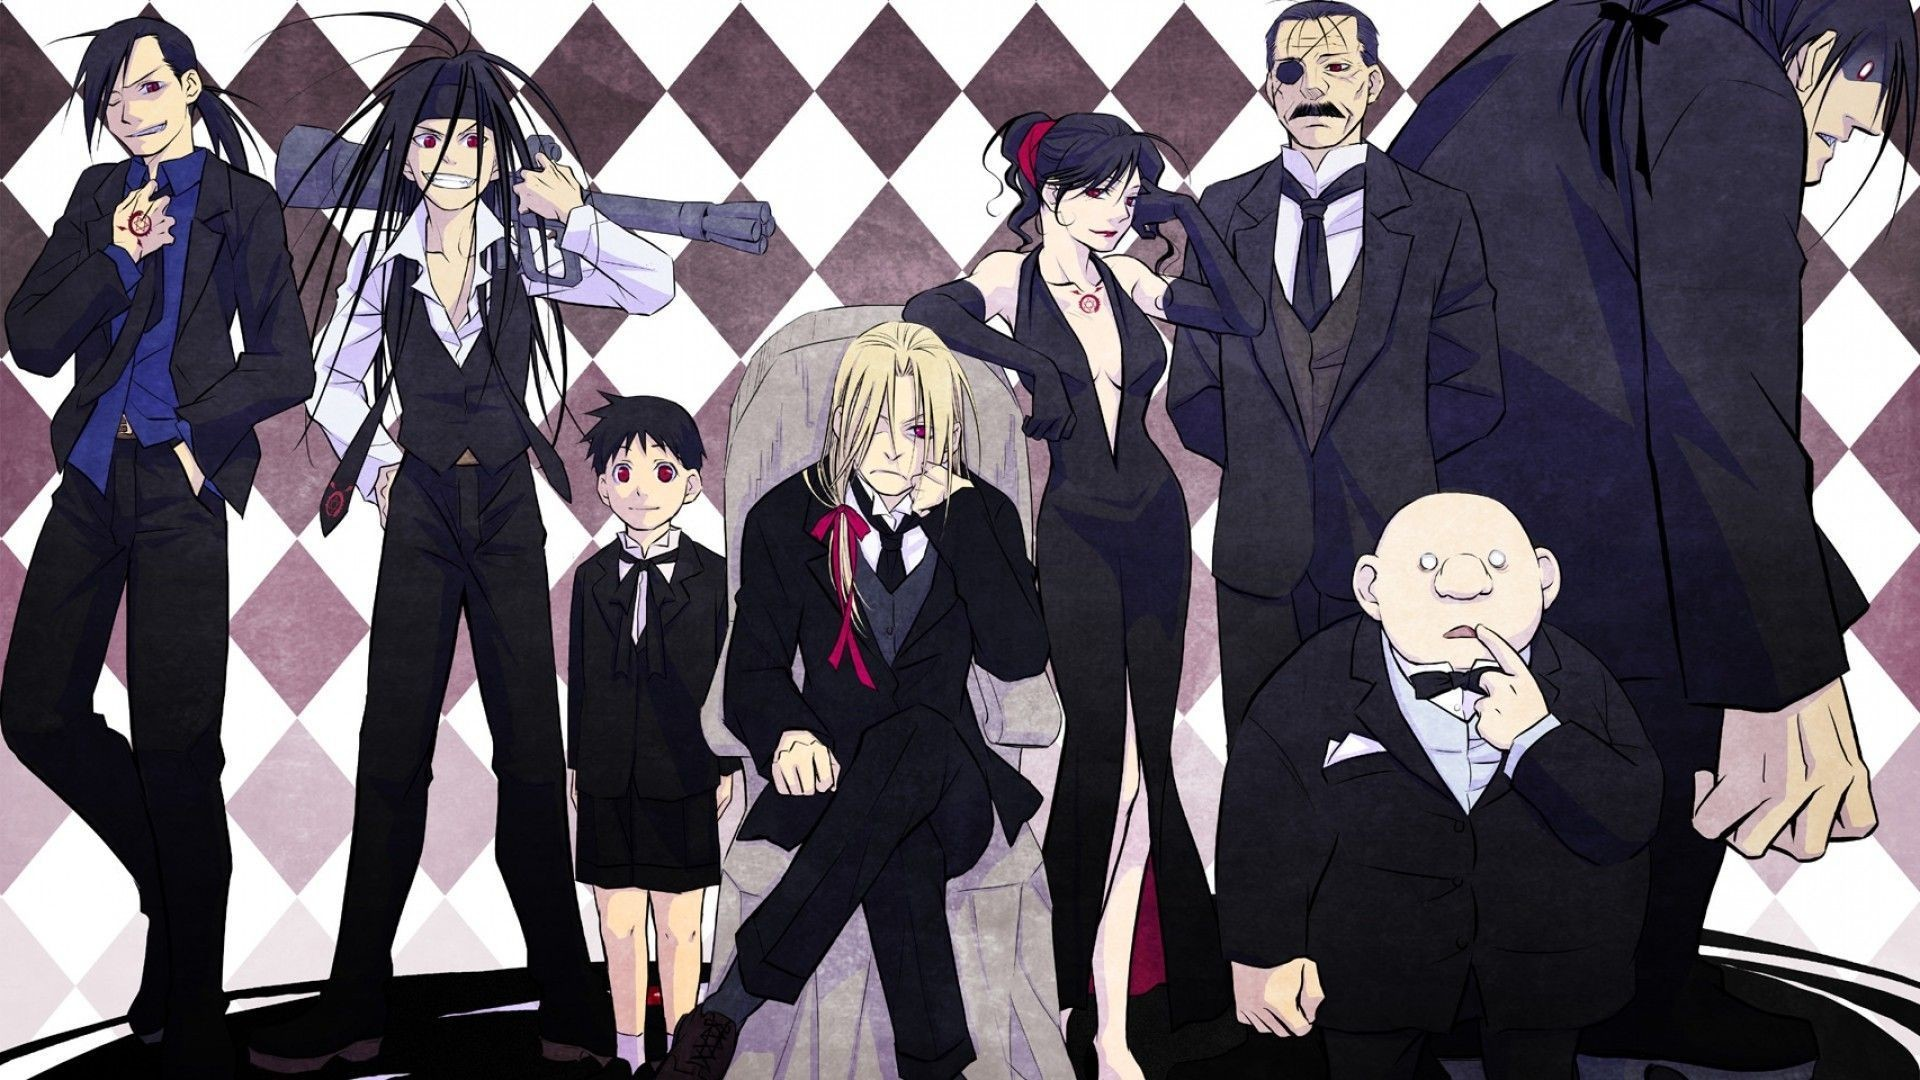 Res: 1920x1080, Fullmetal Alchemist Wallpapers HD Wallpaper Wallpapers and